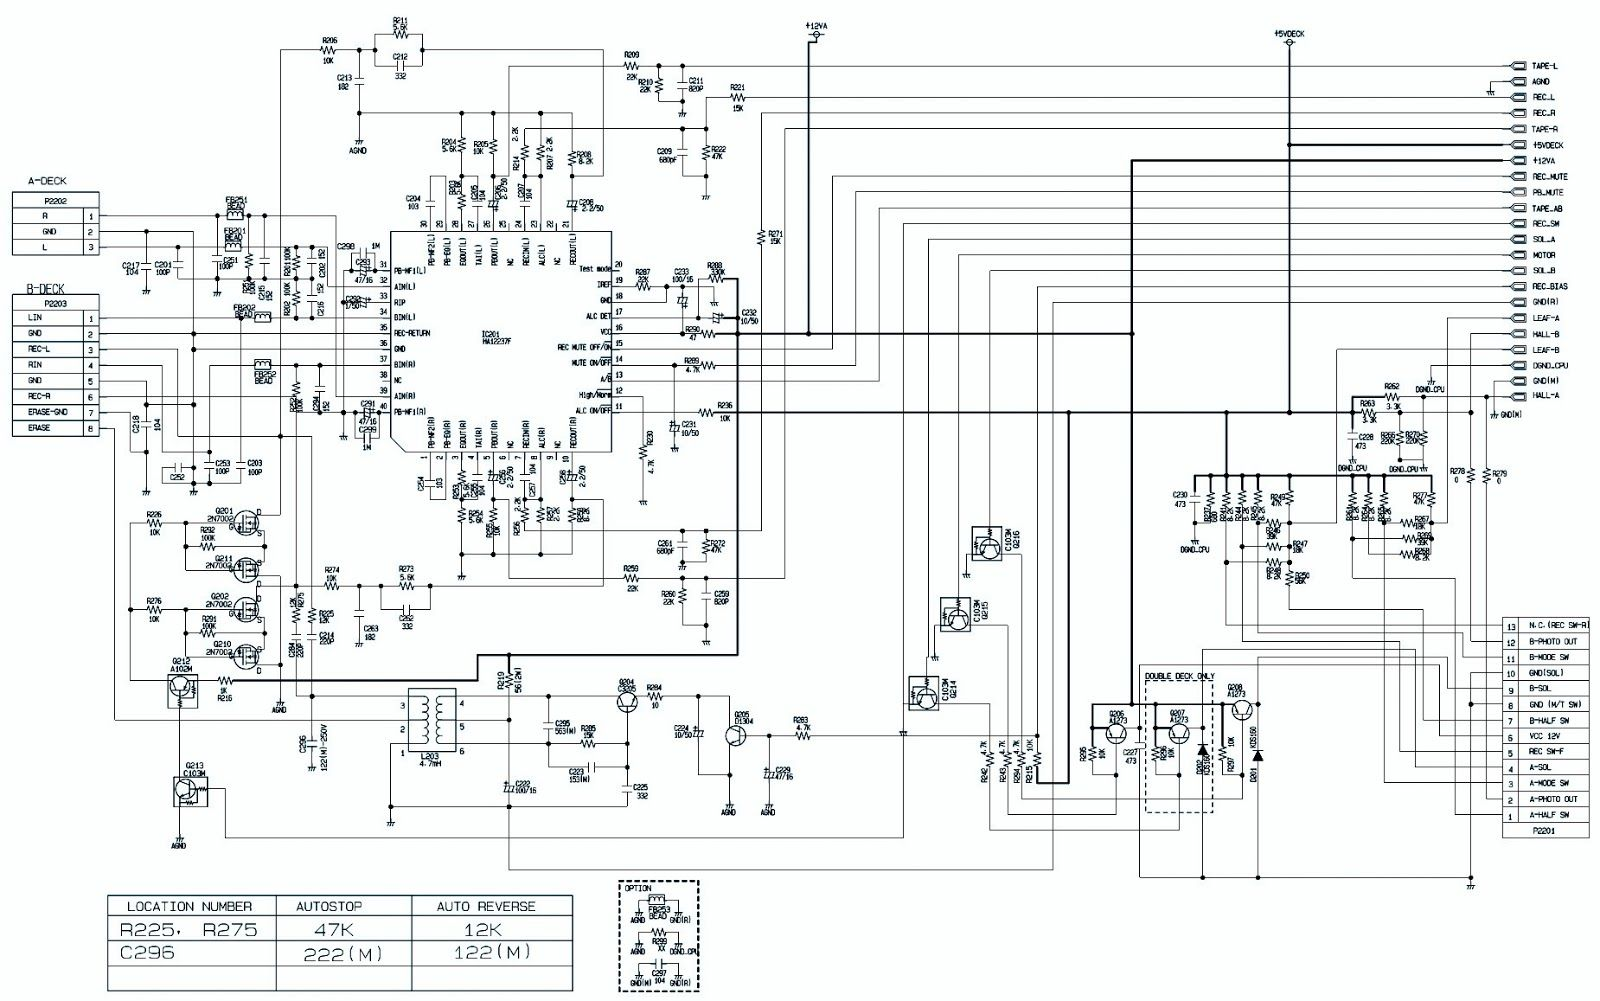 Wiring Diagram Whirlpool Model Ler4634eq2 Electrical Diagrams Dryer Wgd4800bq Behringer B2031 Schematic Active 2